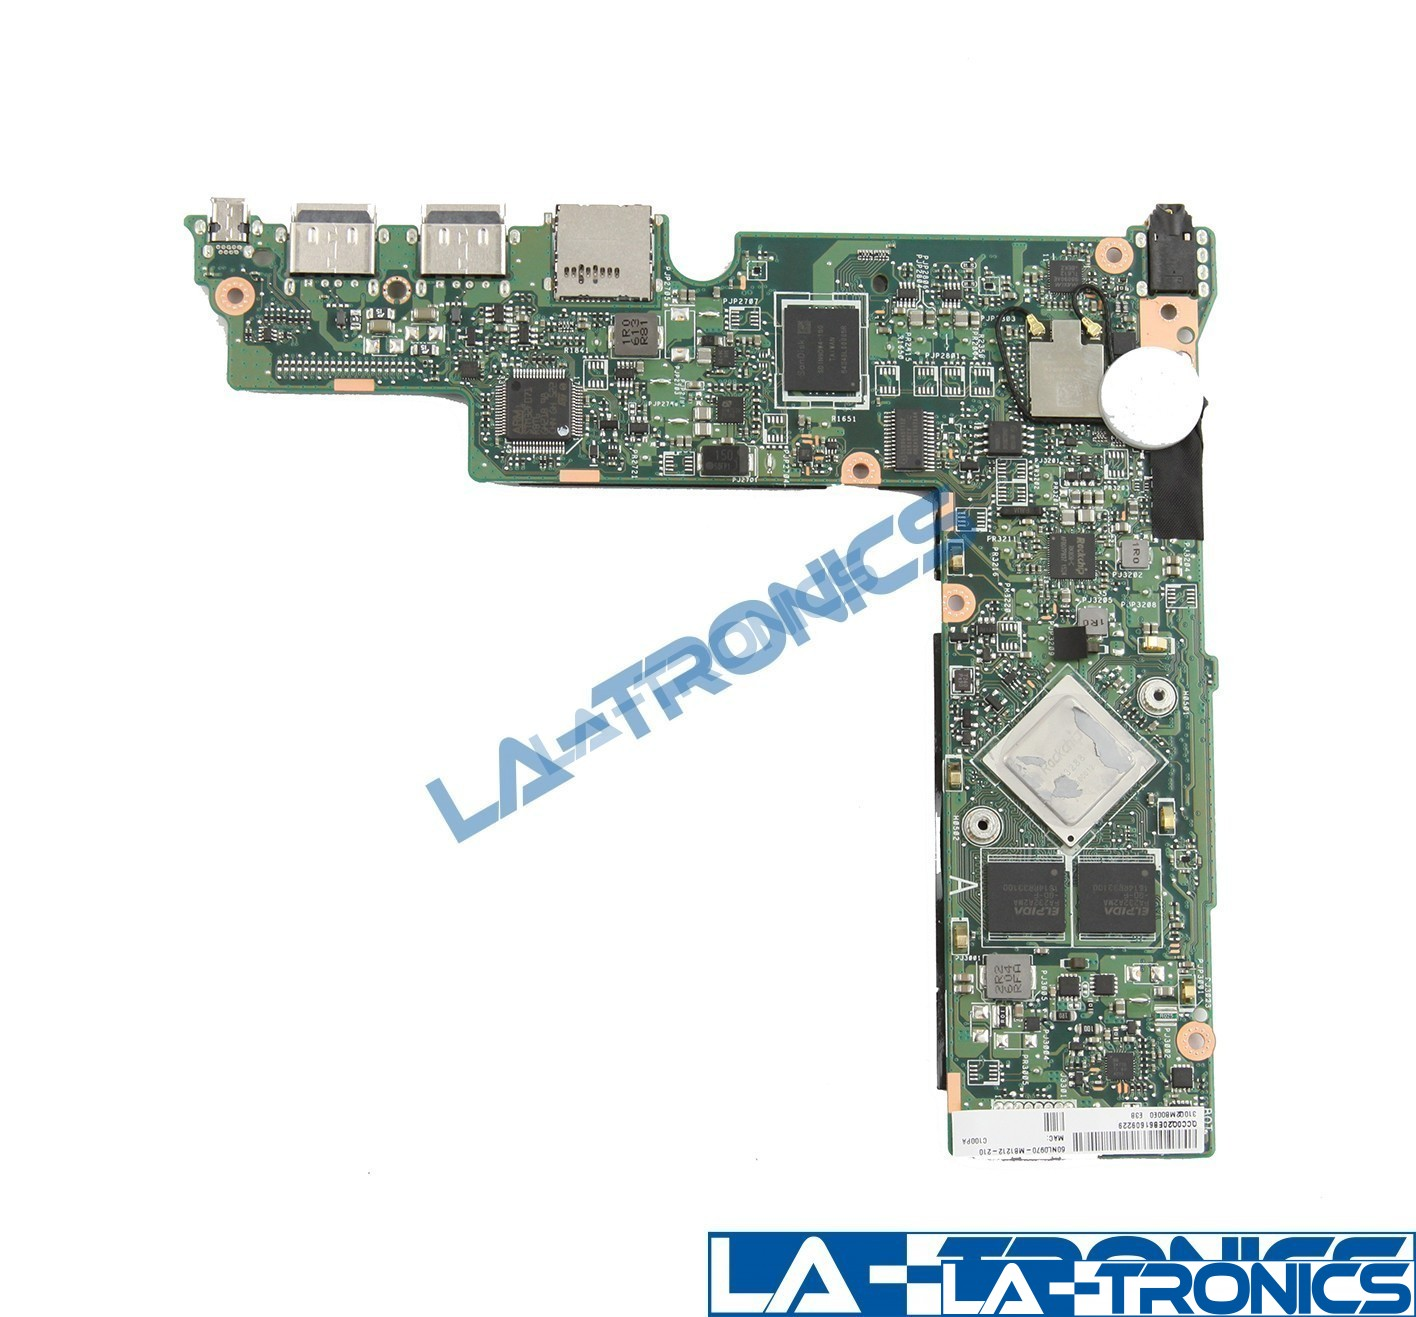 ASUS Chromebook C100P Motherboard Quad Core 1.80GHZ 2GB 16GB SSD 60NL0970-MB1212